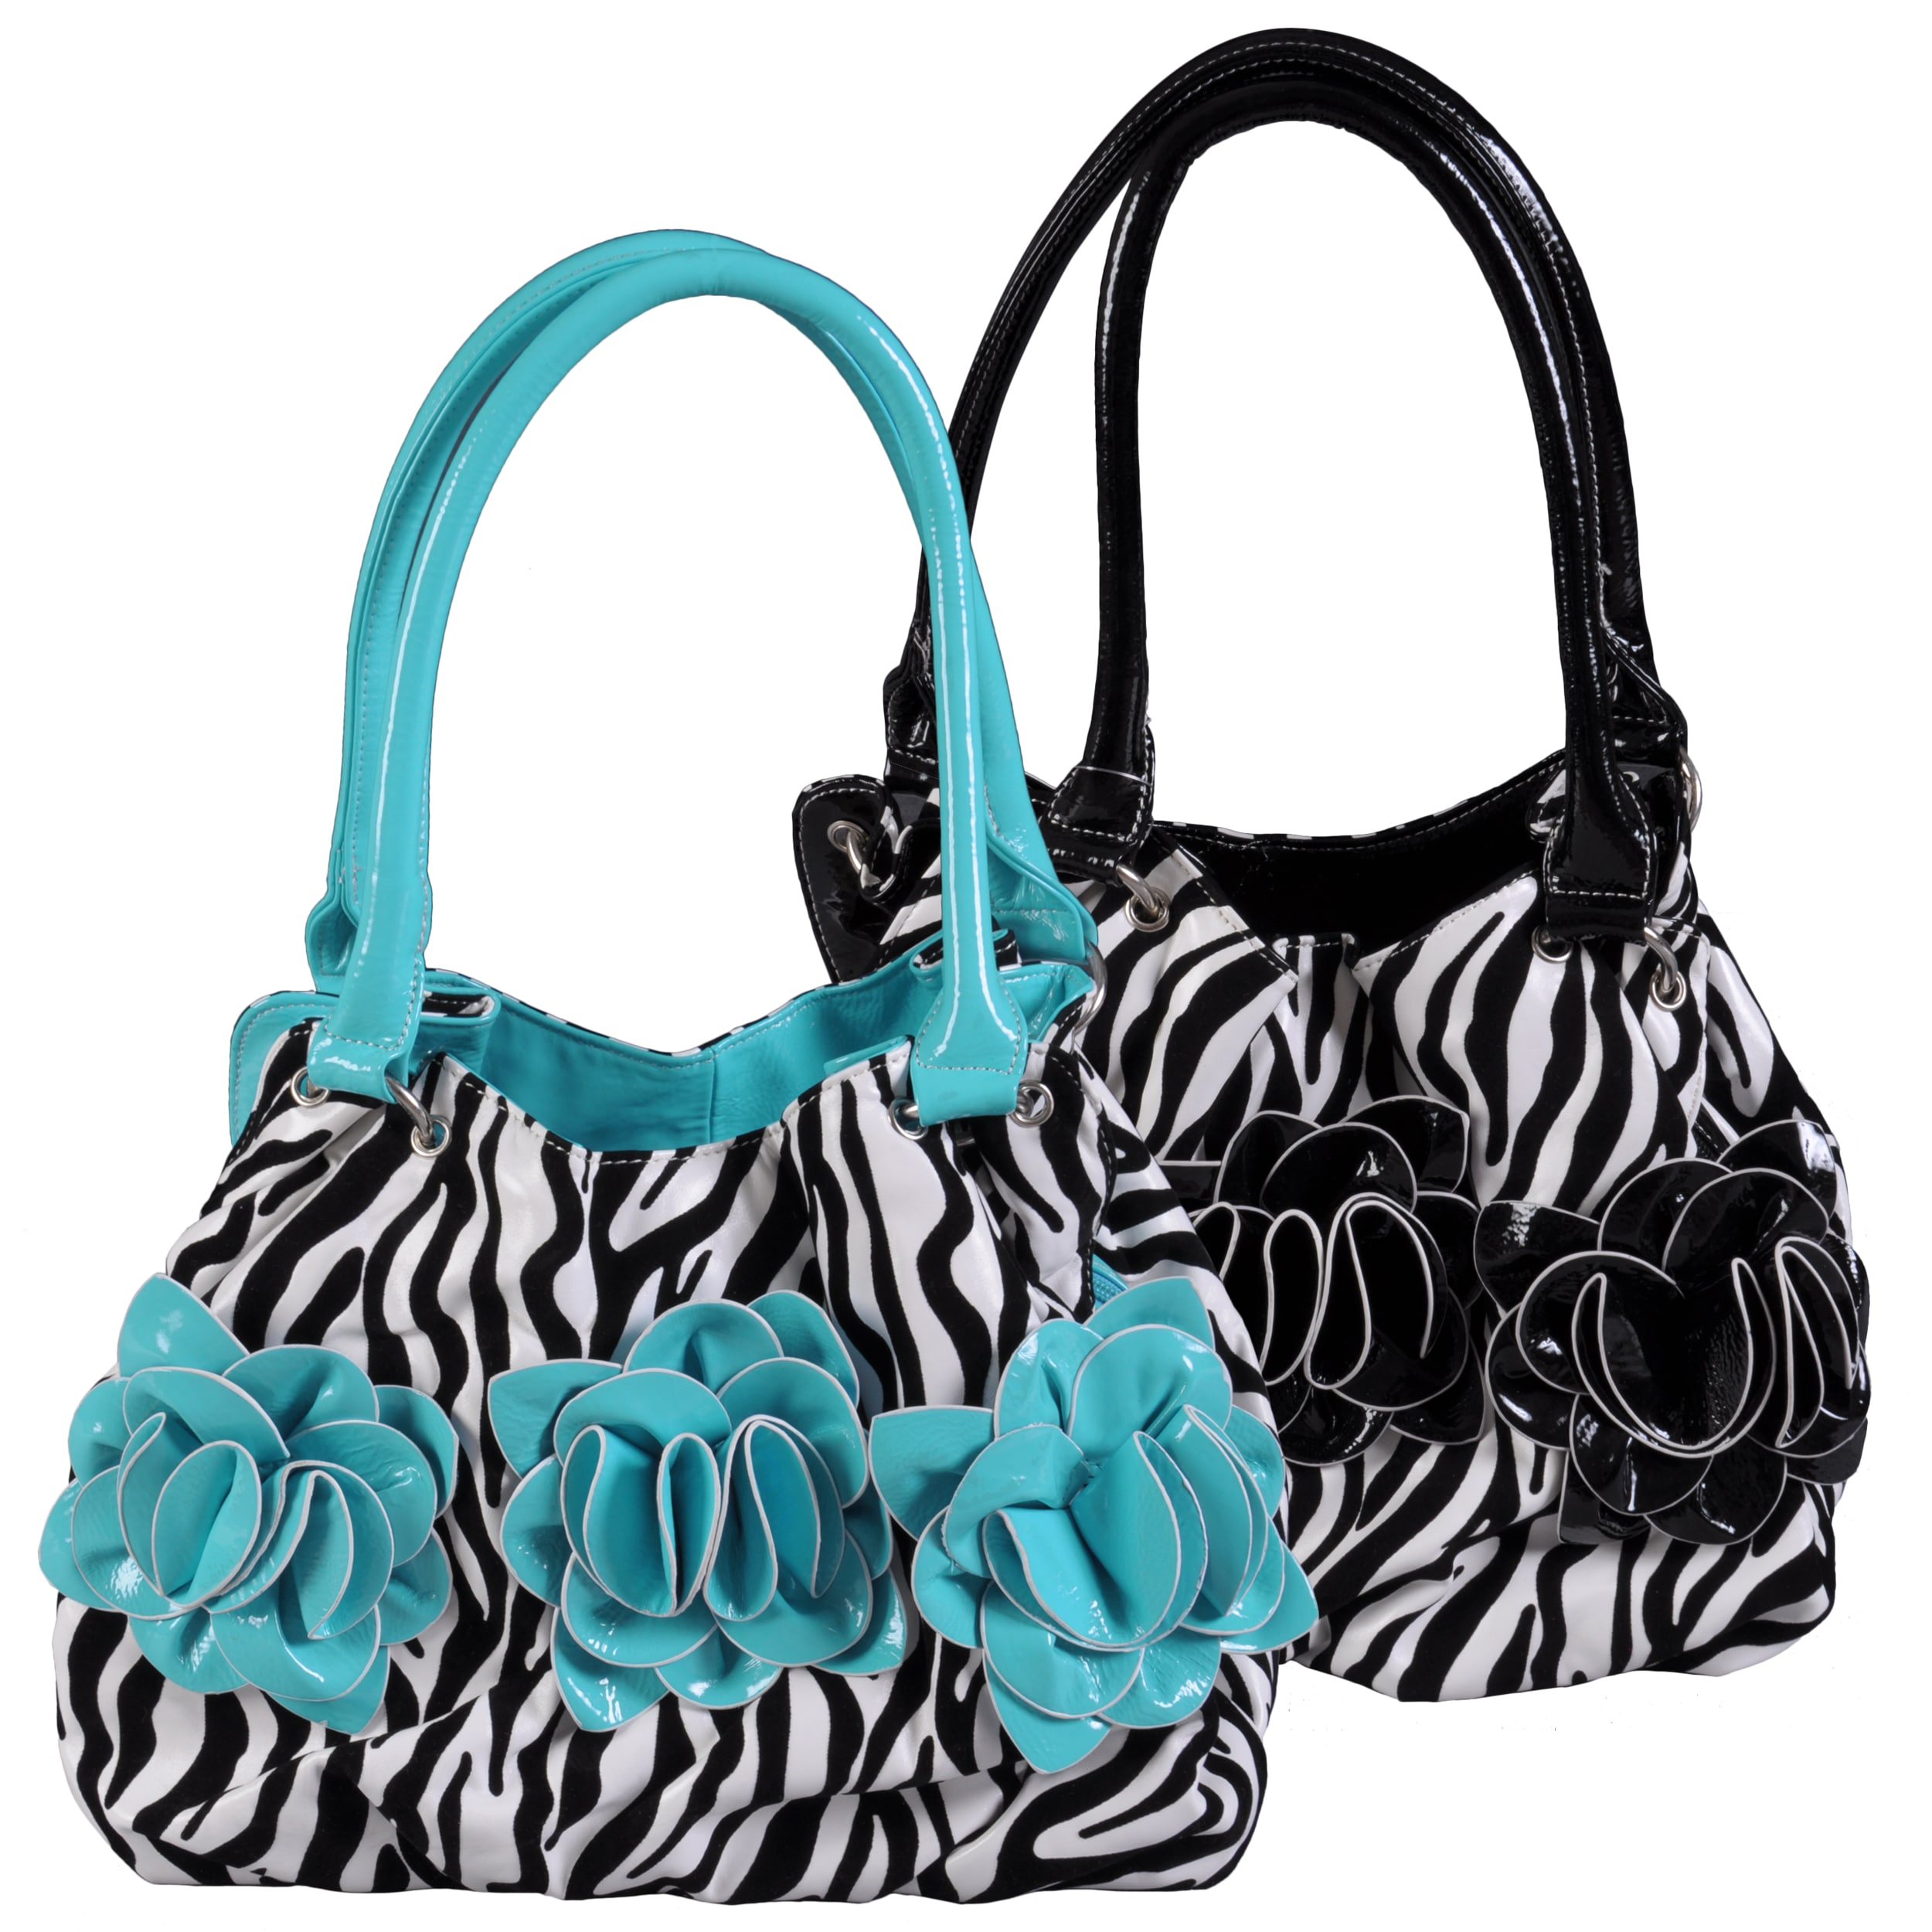 Journee Collection Women's Flower Detail Zebra Print Hobo Bag